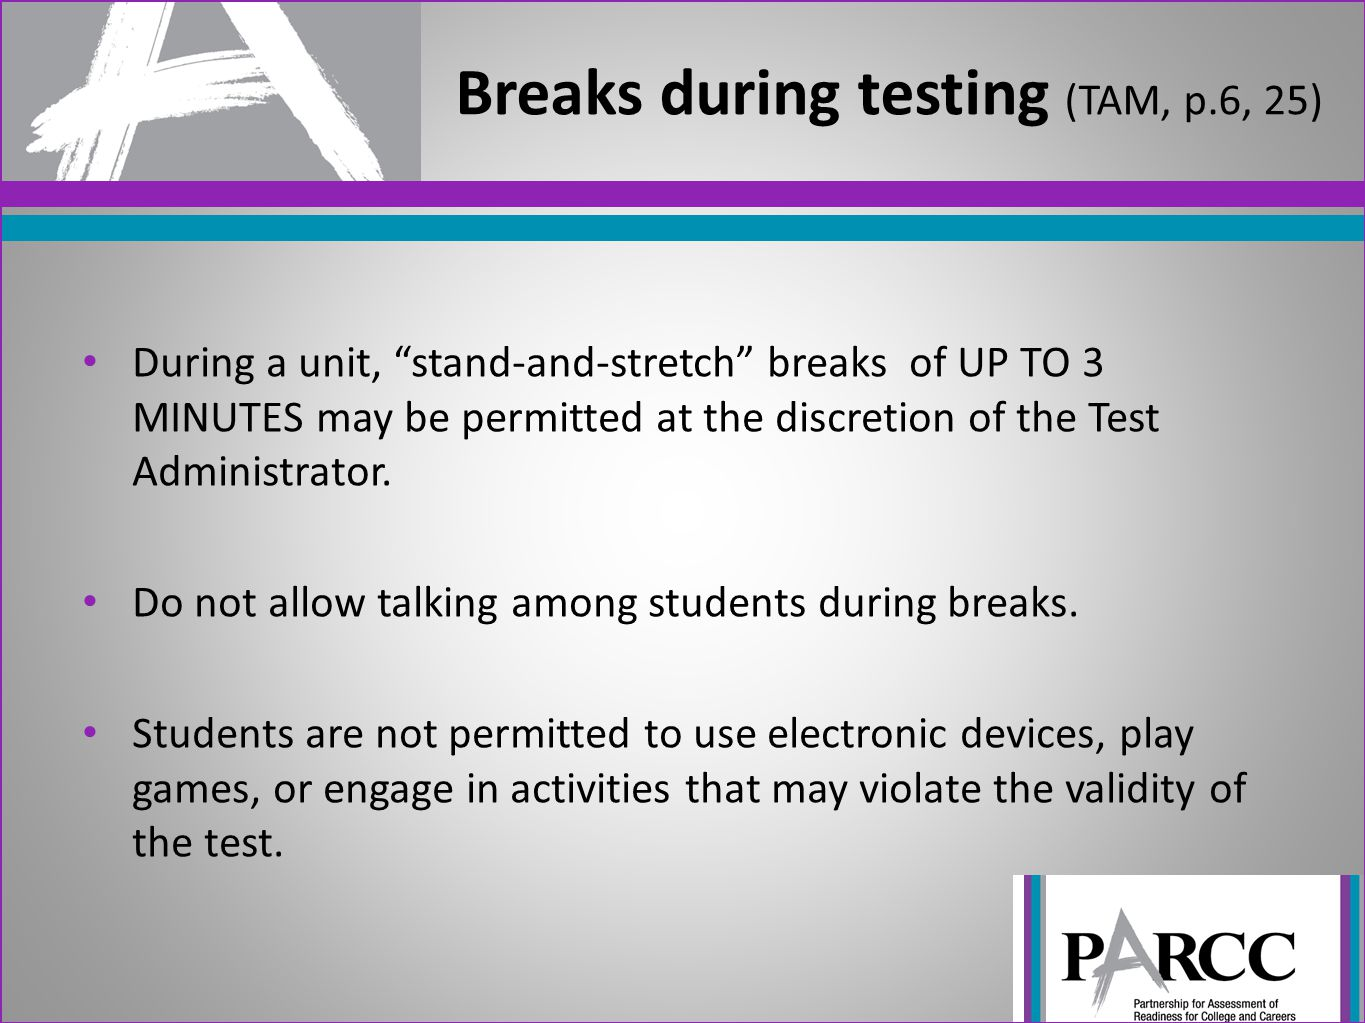 During a unit, stand-and-stretch breaks of UP TO 3 MINUTES may be permitted at the discretion of the Test Administrator.